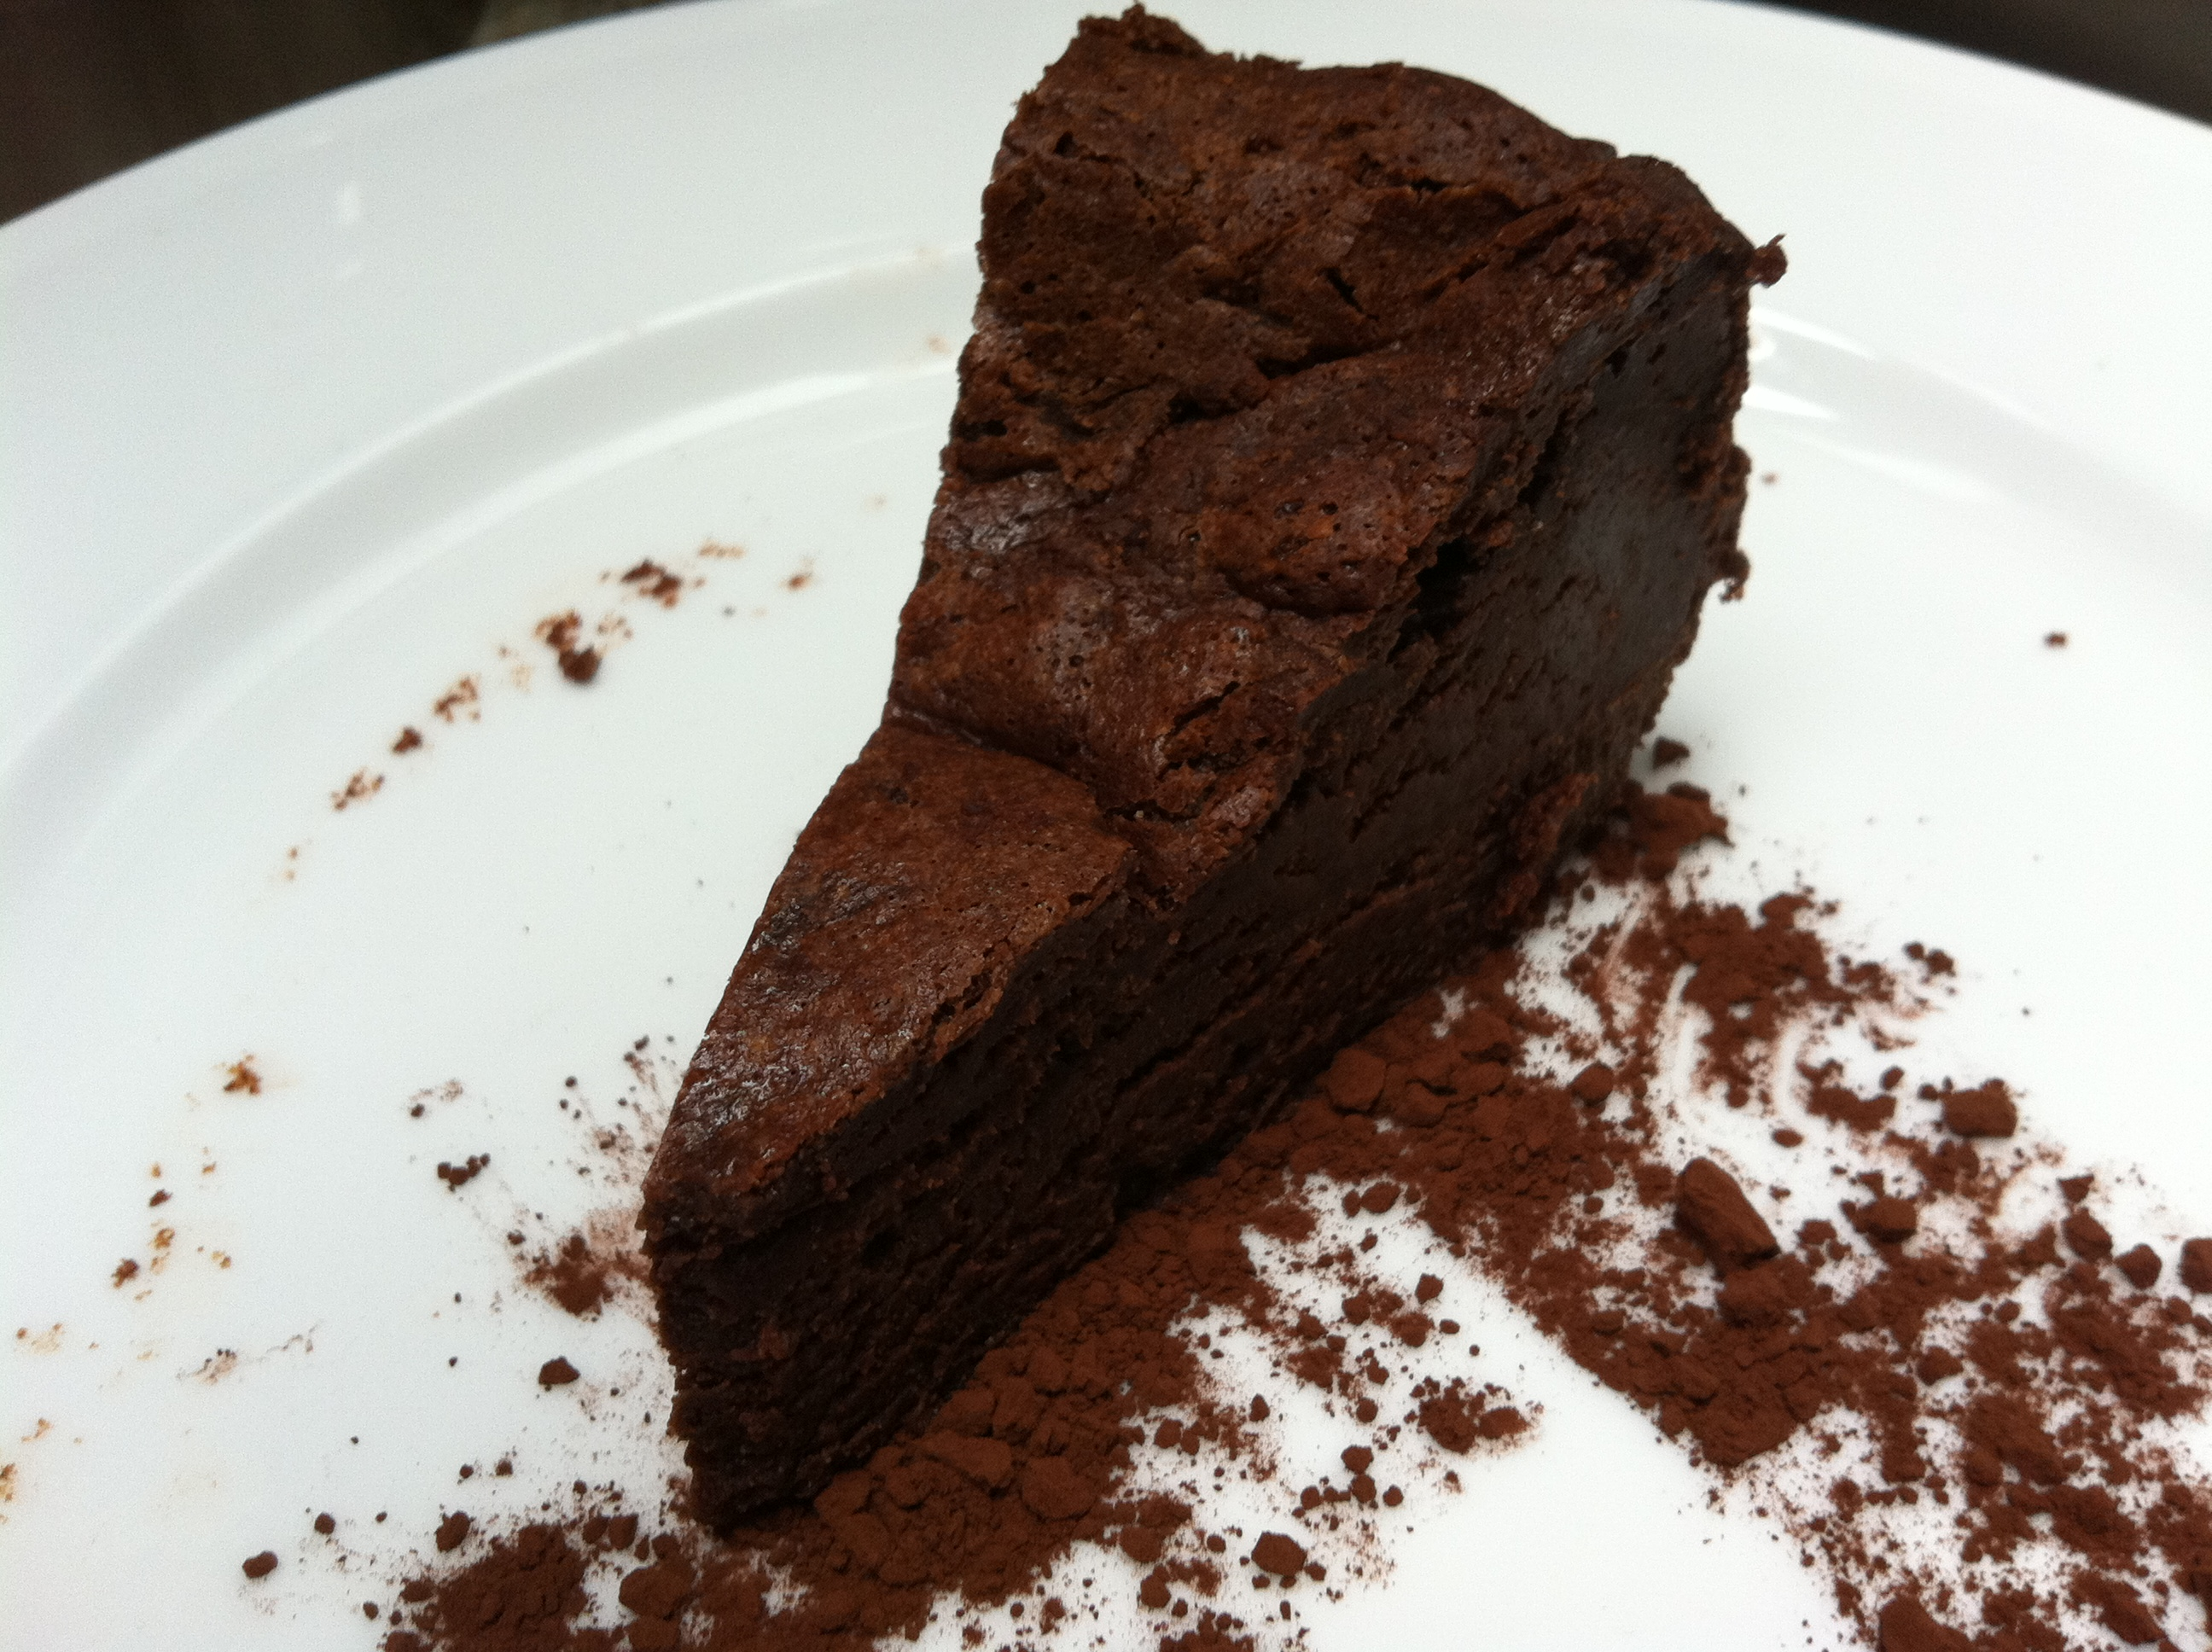 Ottolenghi Flourless Chocolate Cake